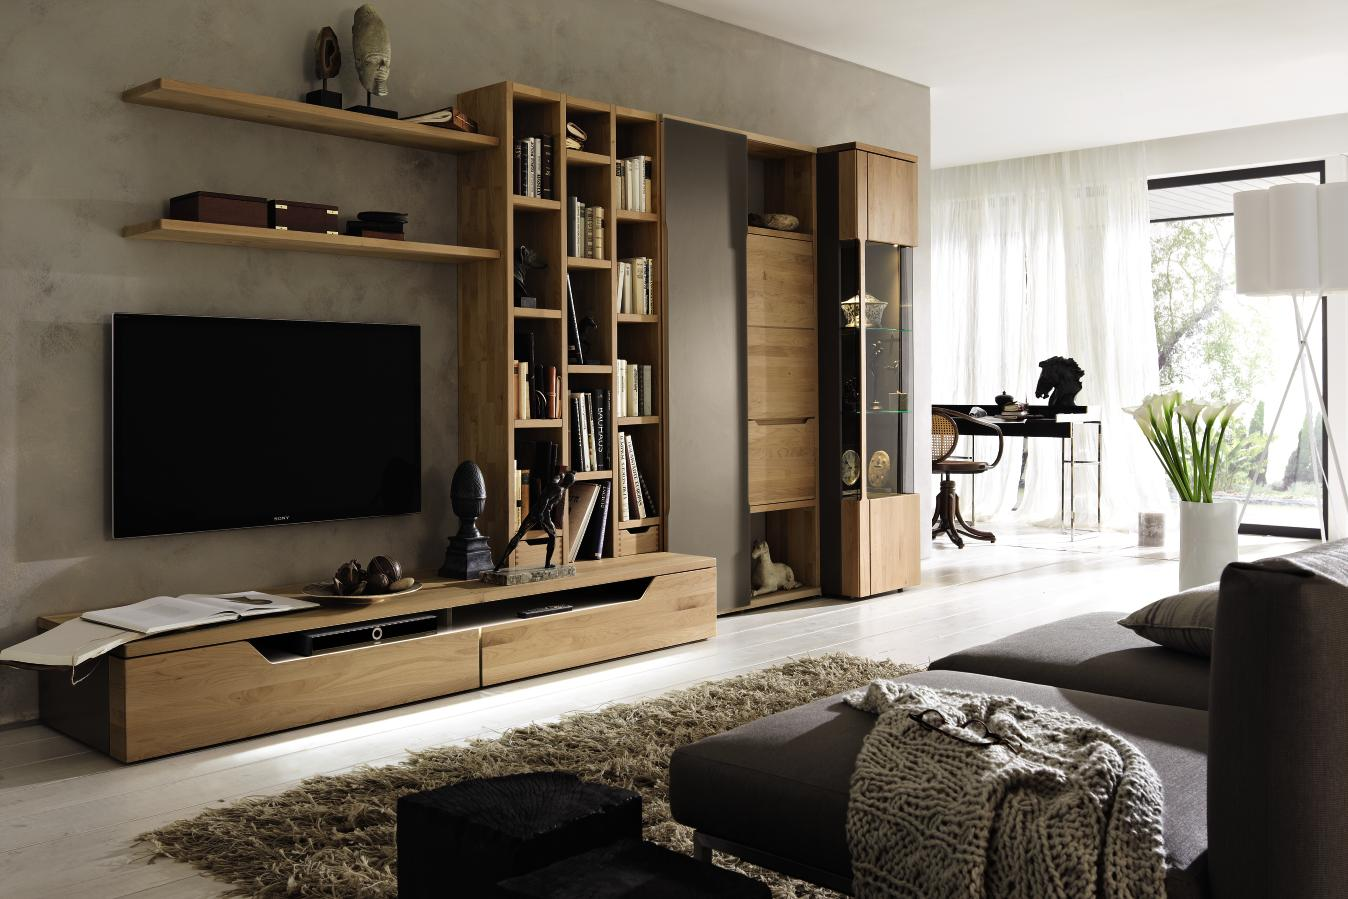 Meuble Tv Biblioth Que Royal Sofa Id E De Canap Et Meuble Maison # Meuble Bibliotheque Tv Ikea